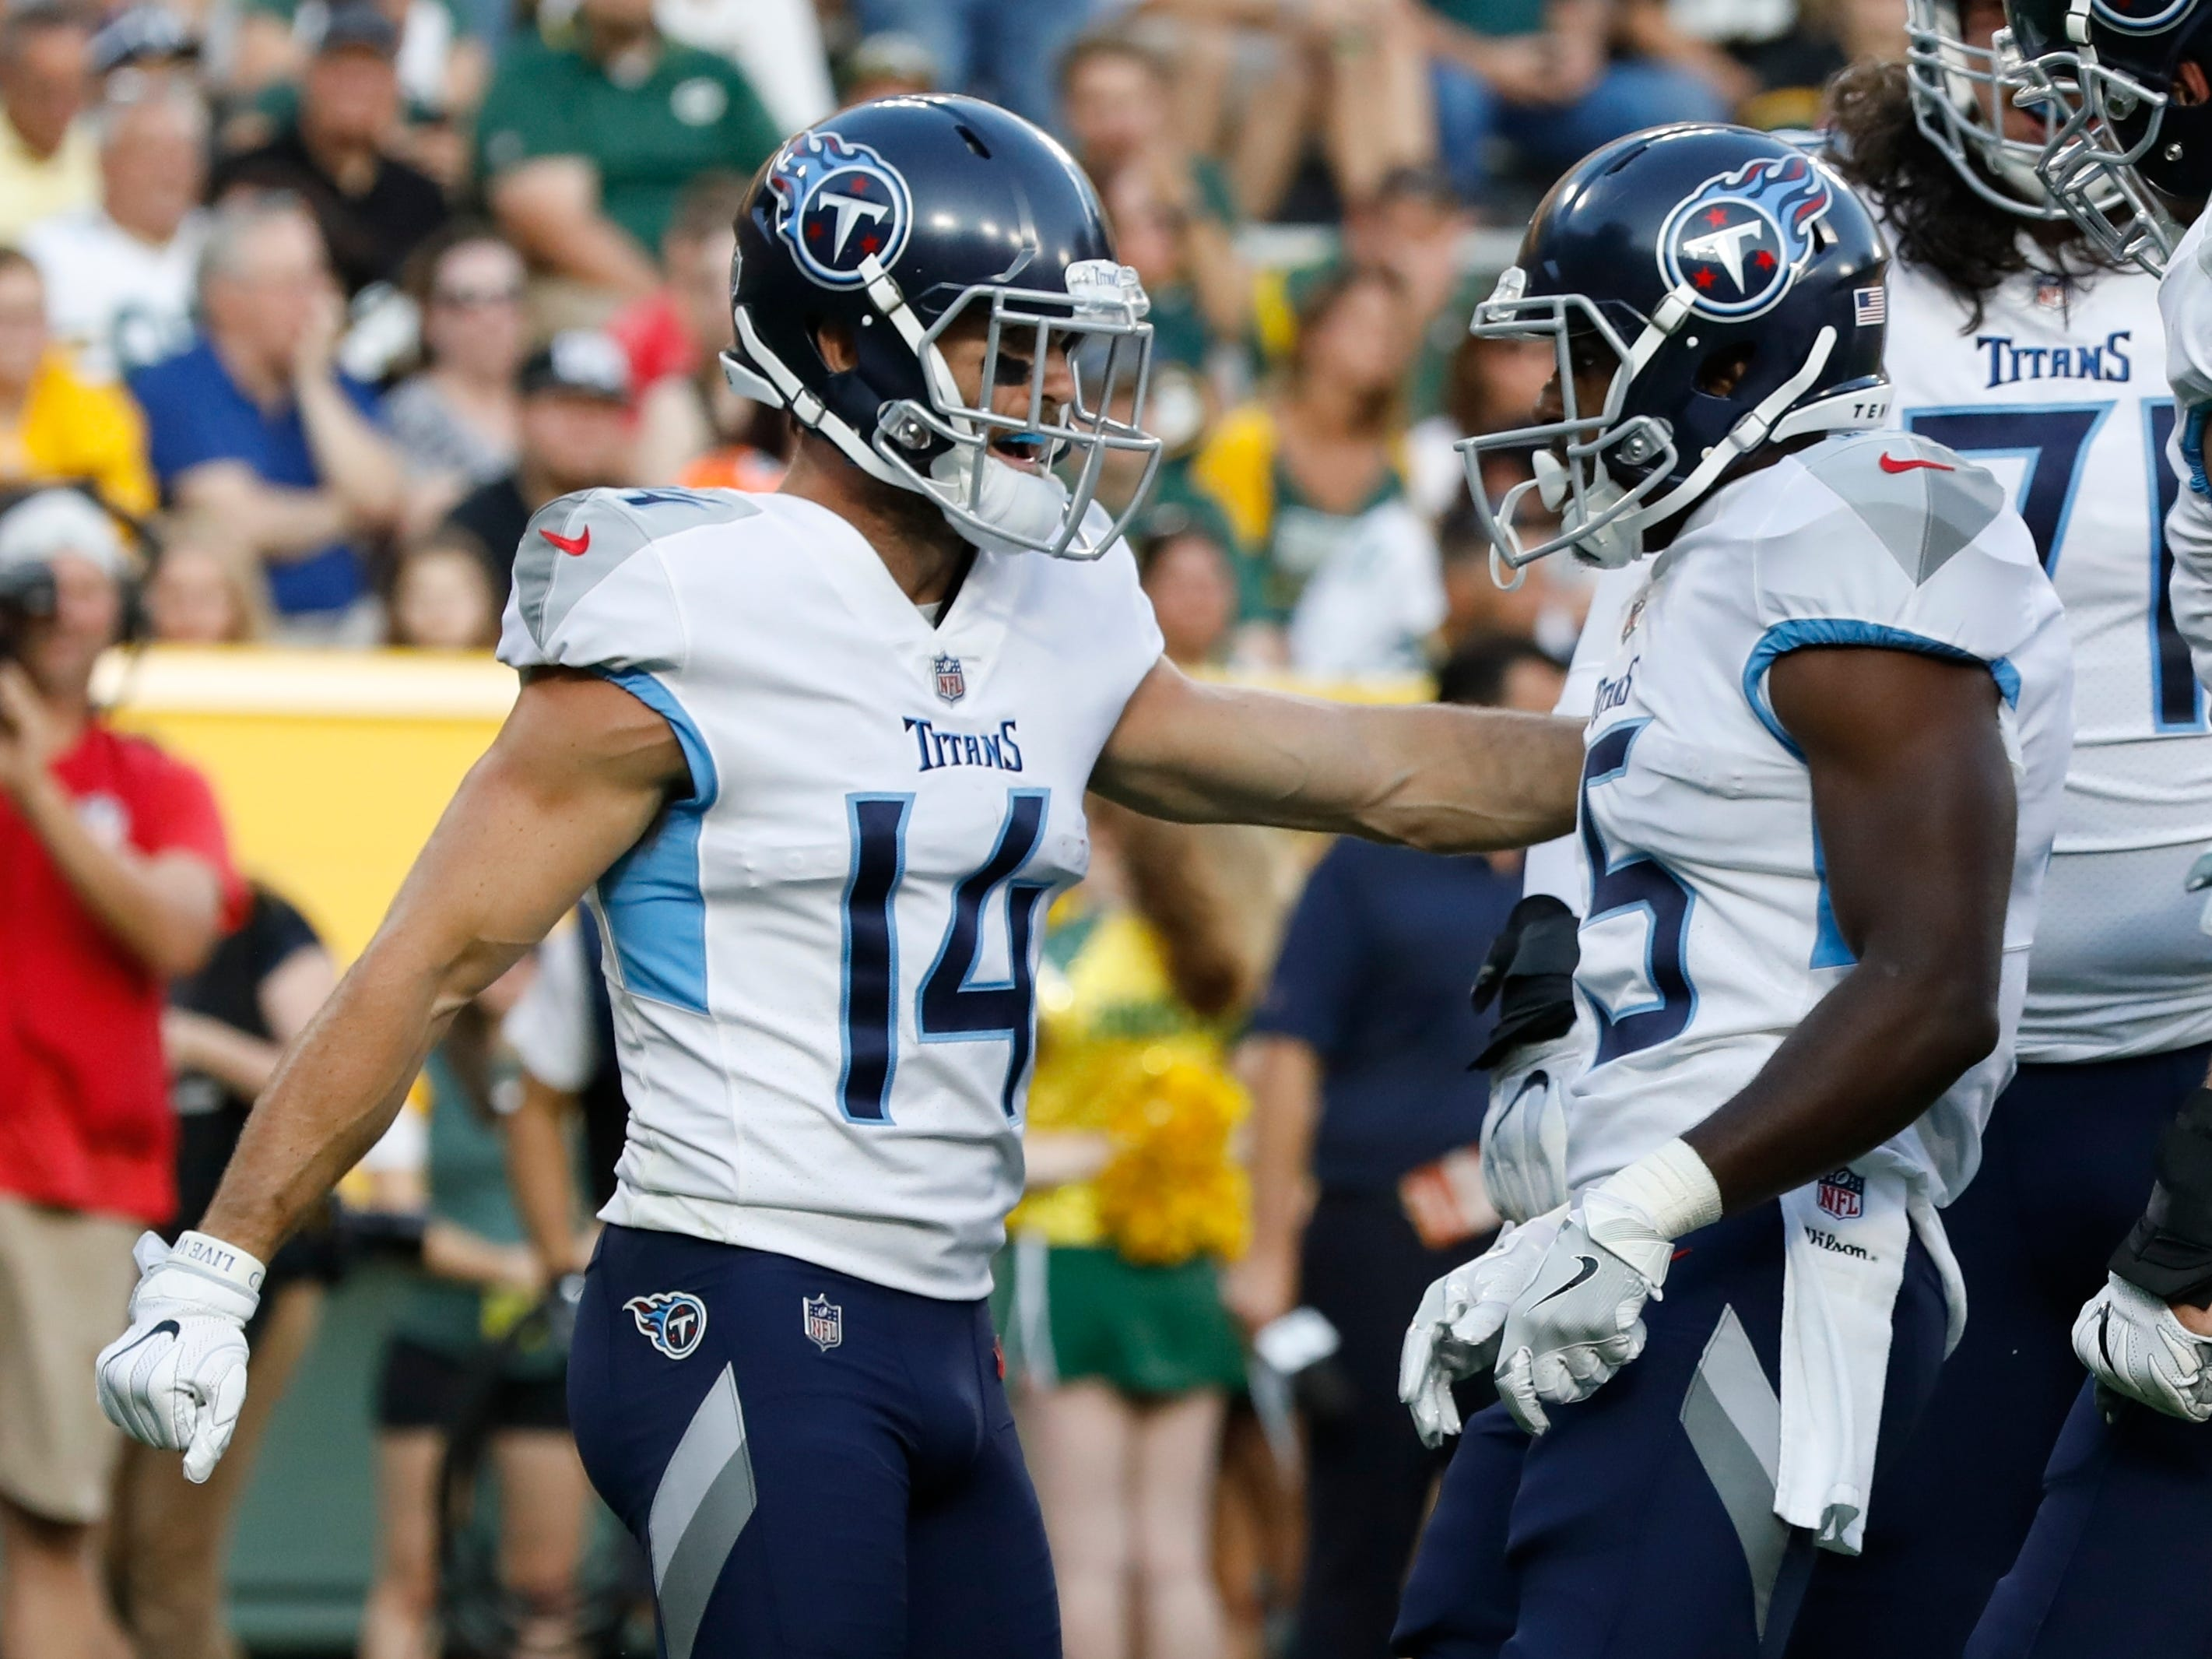 Tennessee Titans' Darius Jennings (15) is congratulated by Nick Williams after his touchdown catch during the first half of a preseason NFL football game against the Green Bay Packers Thursday, Aug. 9, 2018, in Green Bay, Wis. (AP Photo/Mike Roemer)